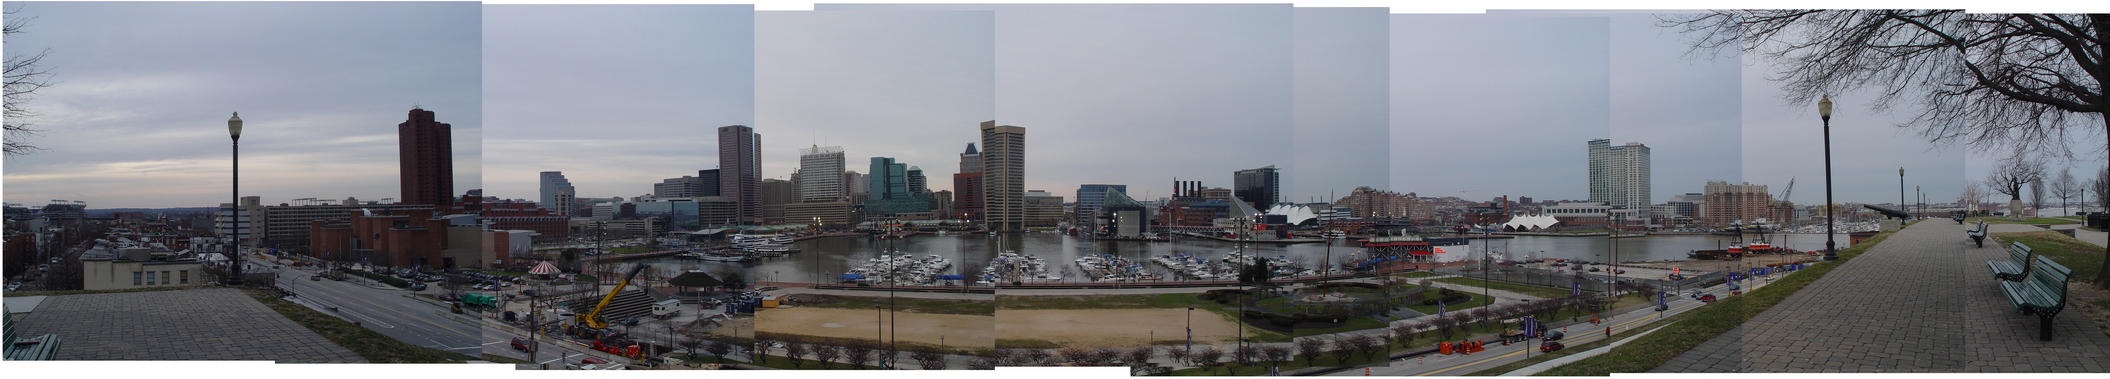 panorama from Federal Hill by IneptSleep